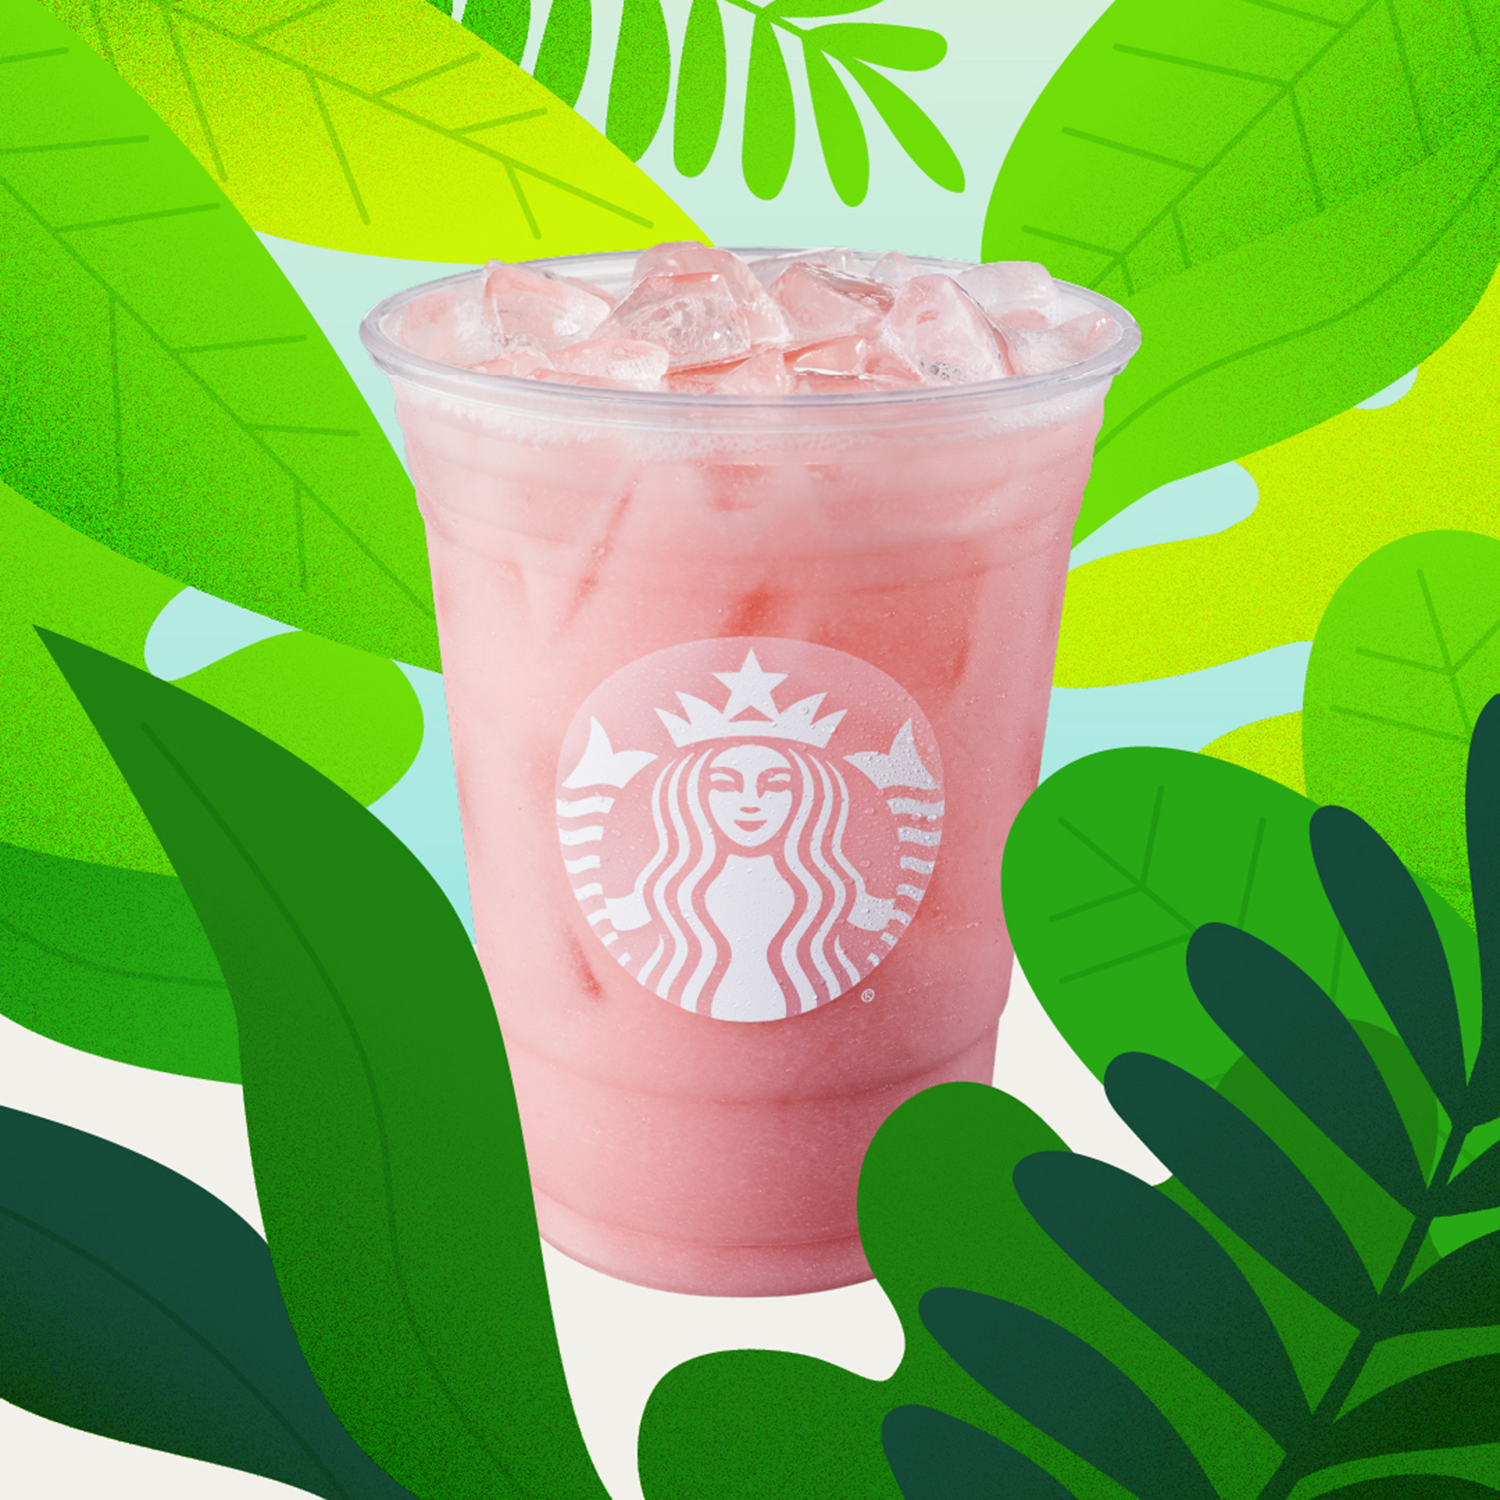 Starbucks drinks